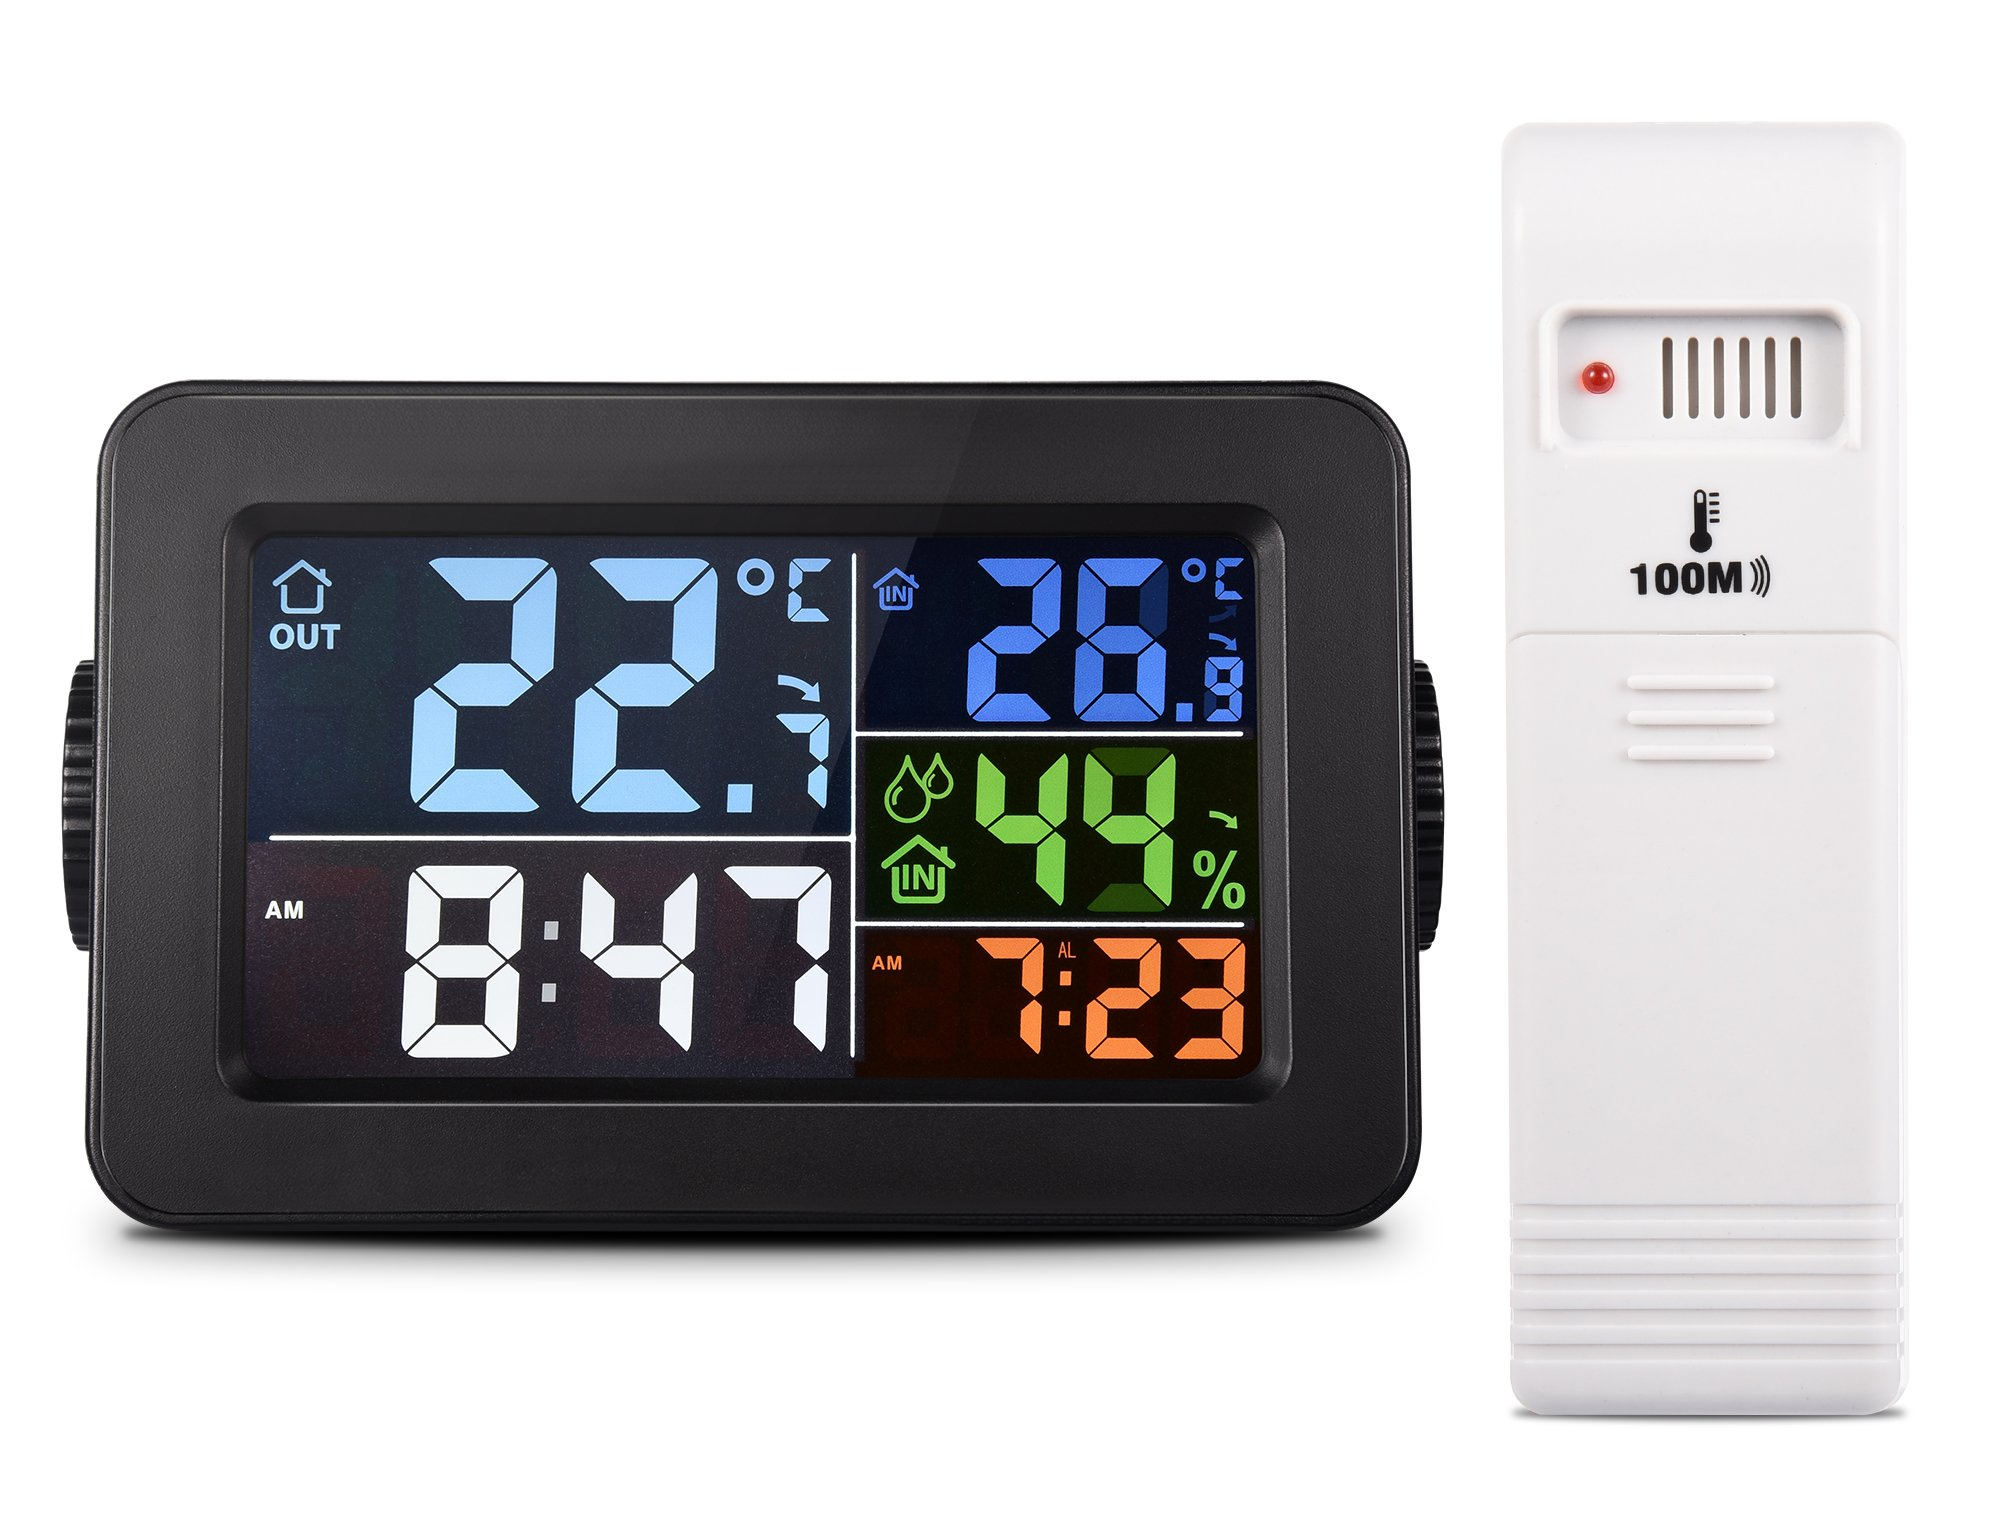 fulljion Multi-function Indoor Outdoor Thermometer Wireless with Alarm Clock, Charging Station/Phone Charger and Backlight Digital Hygrometer Humidity Meter Gauge, 300ft/100m Range(Adapter Included)